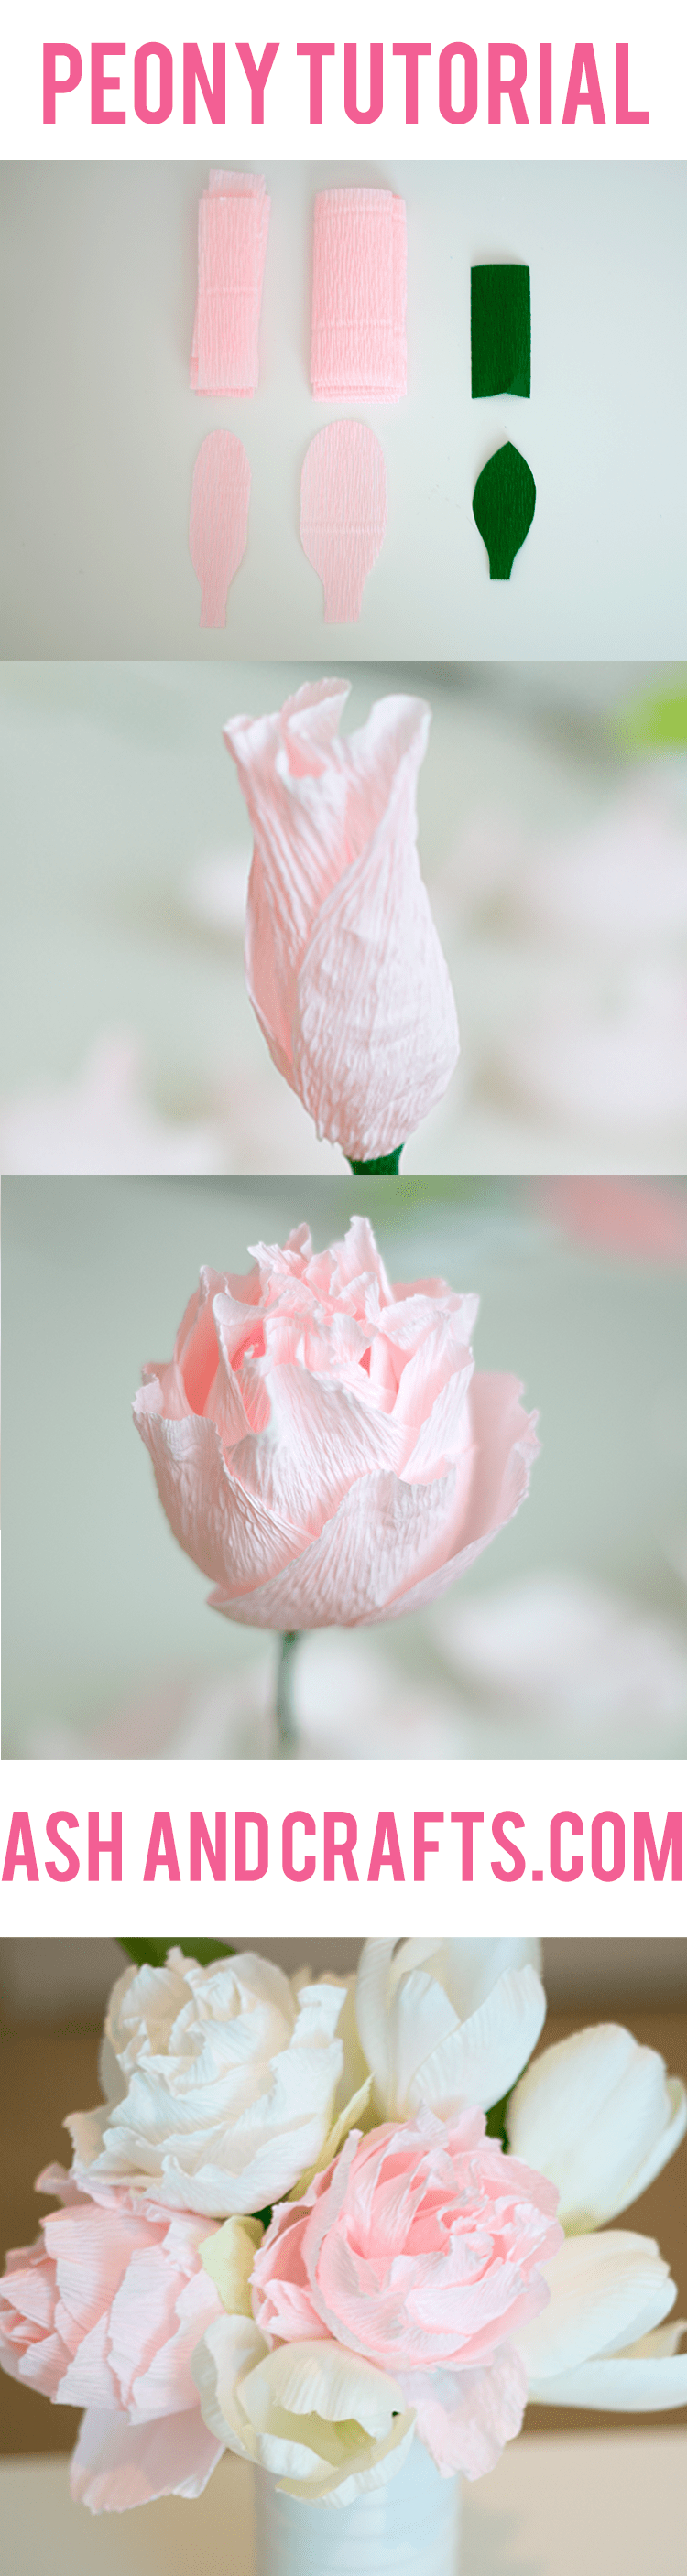 Paper Peony Tutorial Ash And Crafts